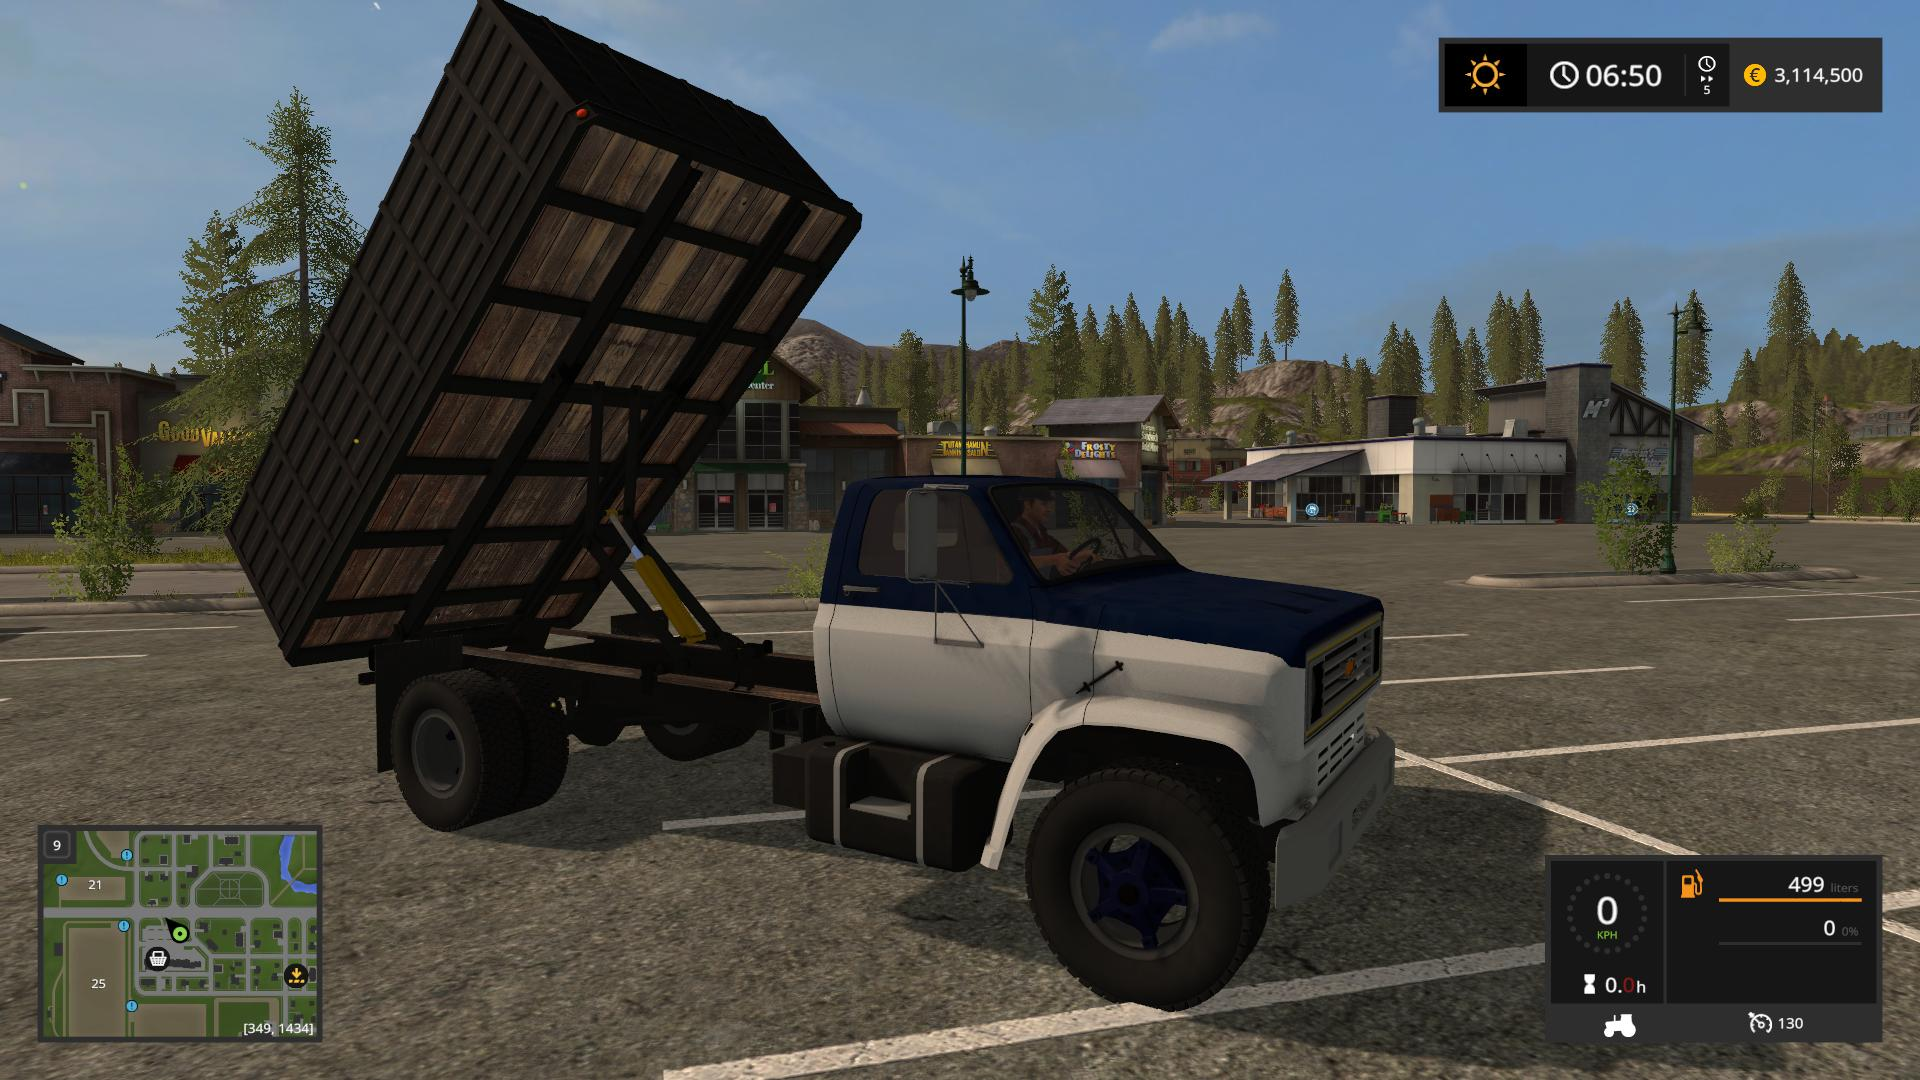 Chevy C70 Graint Truck v1.0